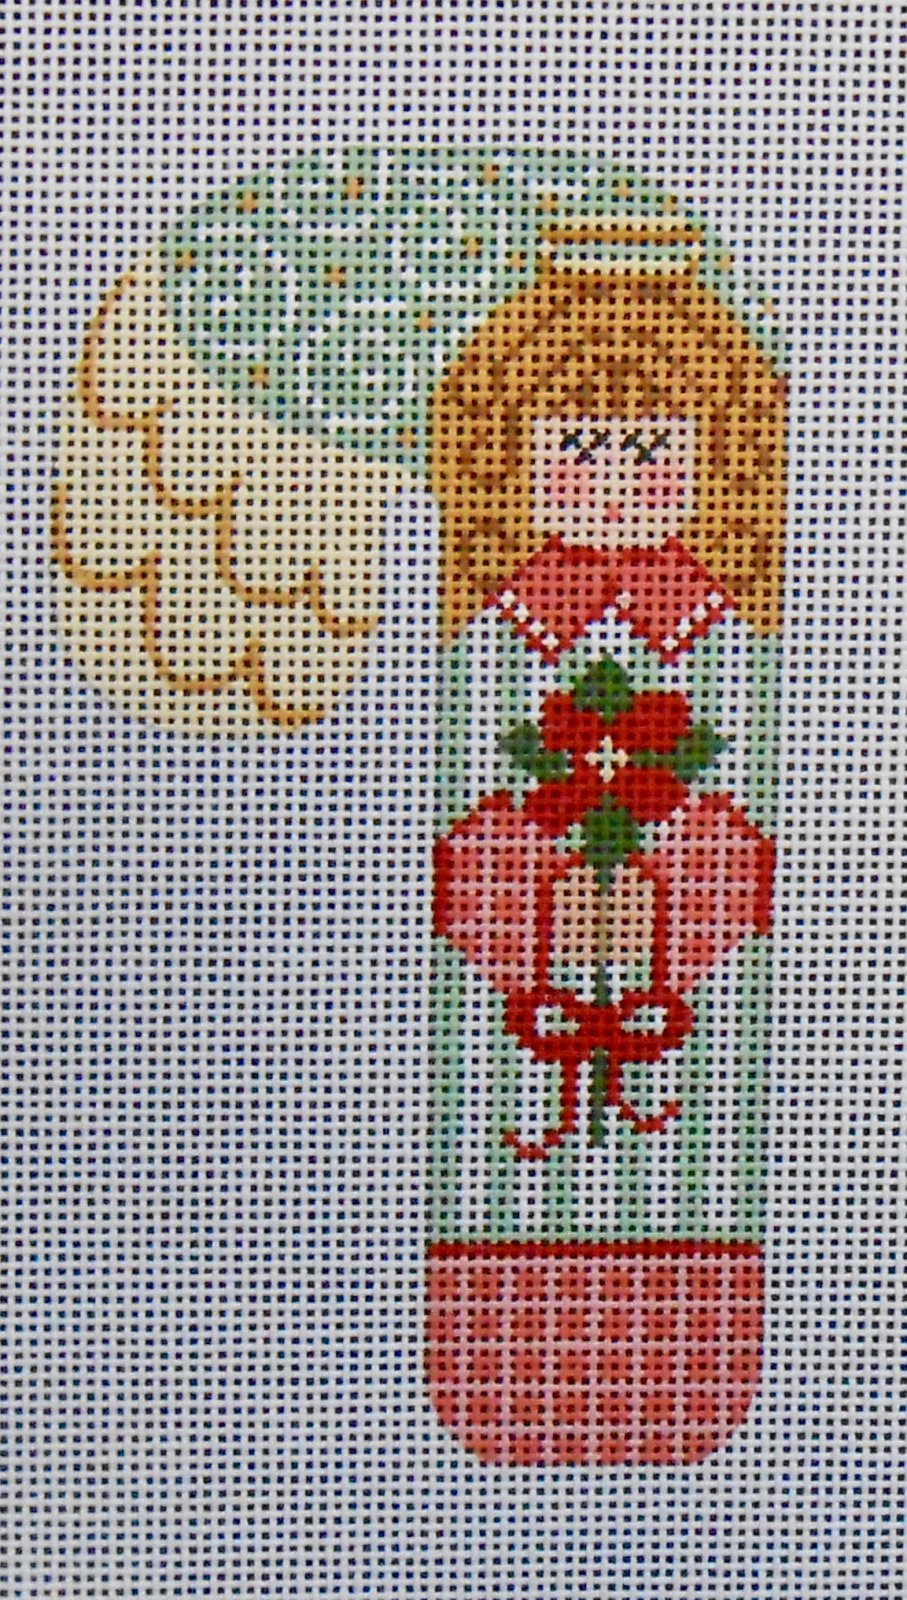 Angel with Poinsettias Candy Cane